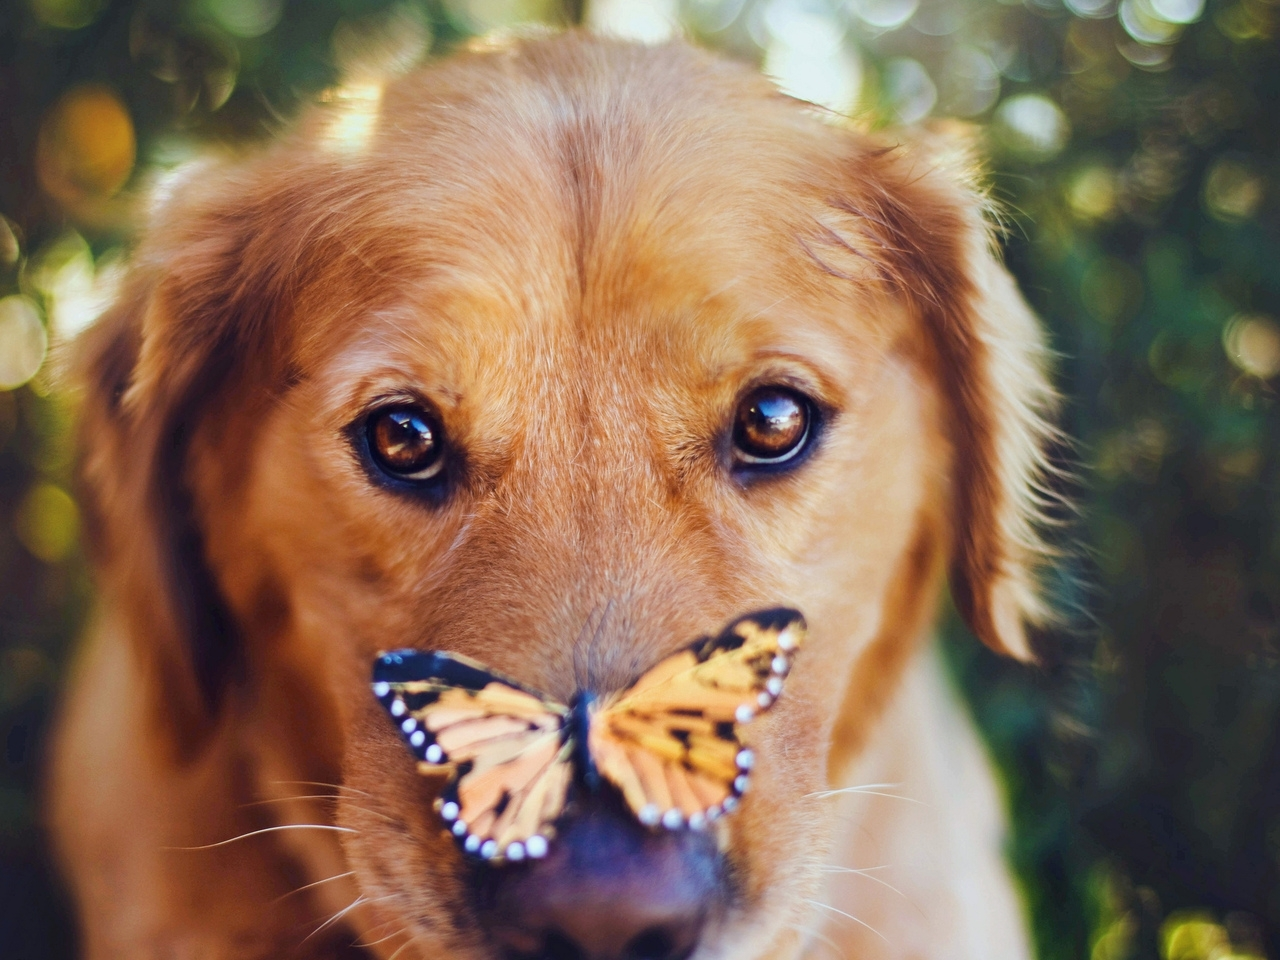 49687 download wallpaper Animals, Dogs screensavers and pictures for free